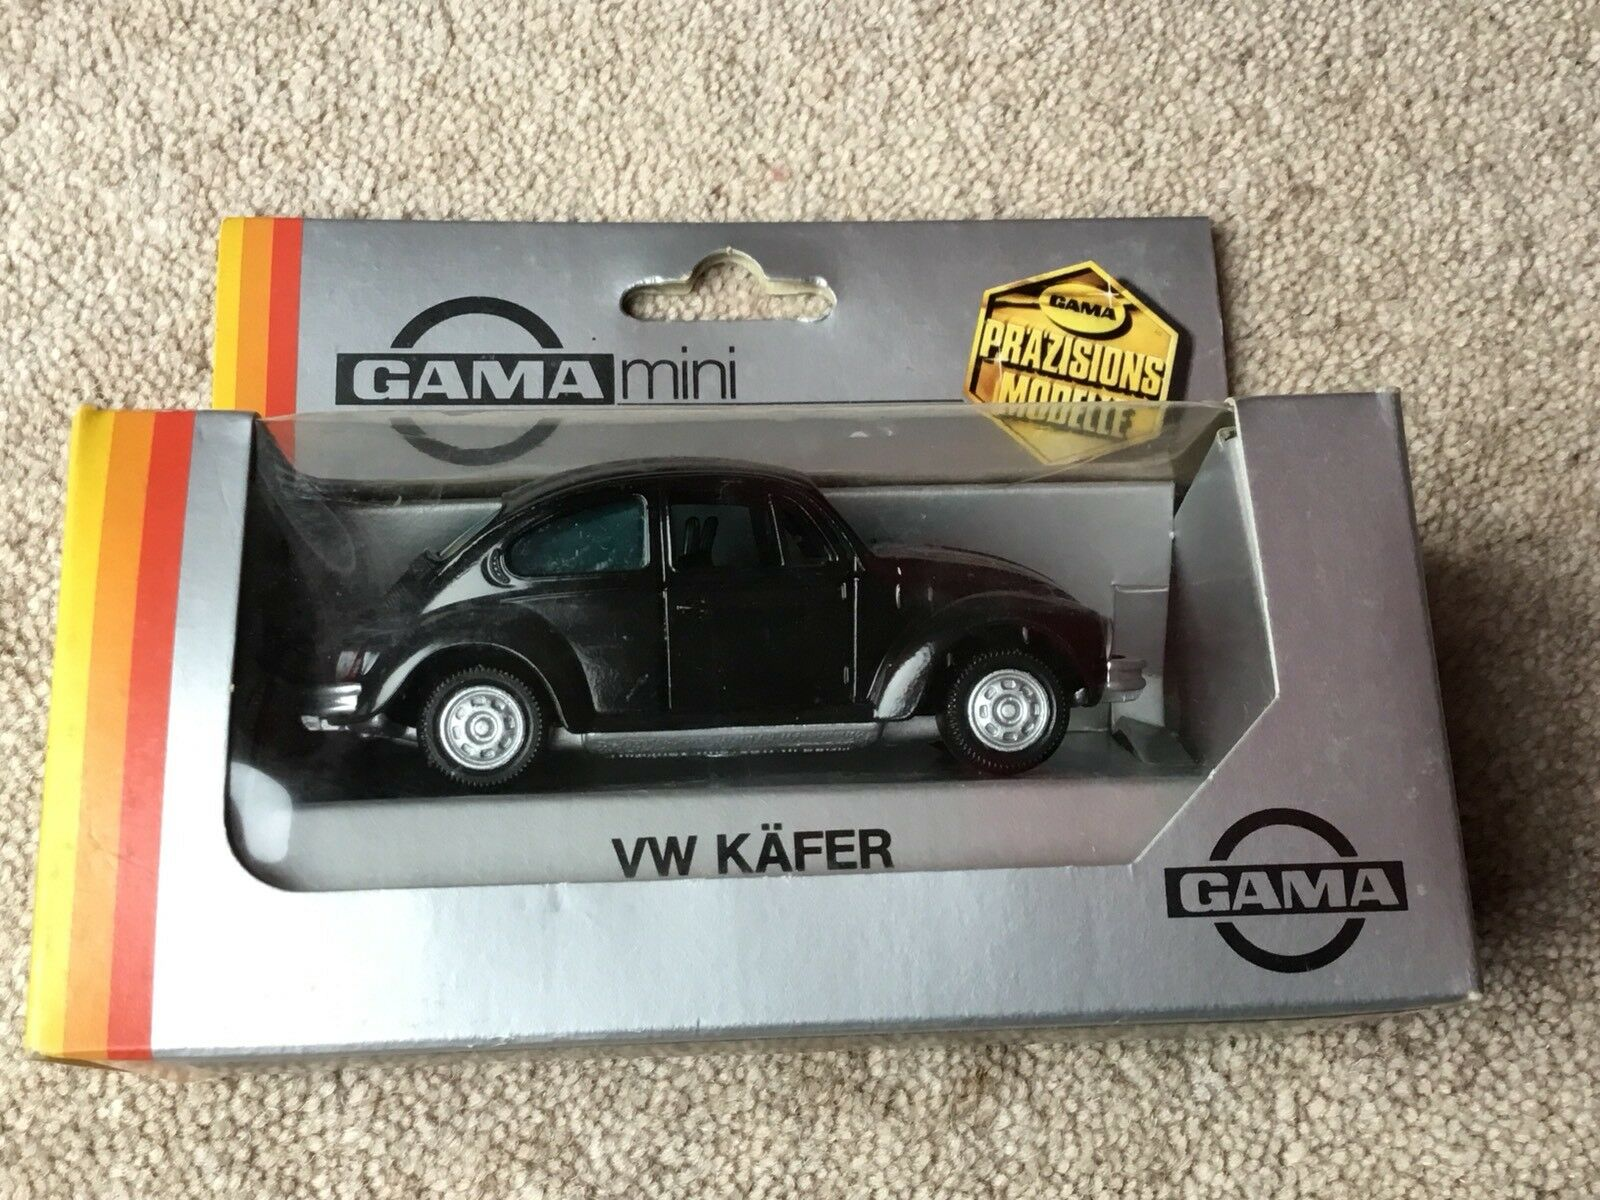 VW-KAFER 1302 BEETLE GAMA MINI No8 1104000 1 43 NEW BOX RARE WEST GERMANY